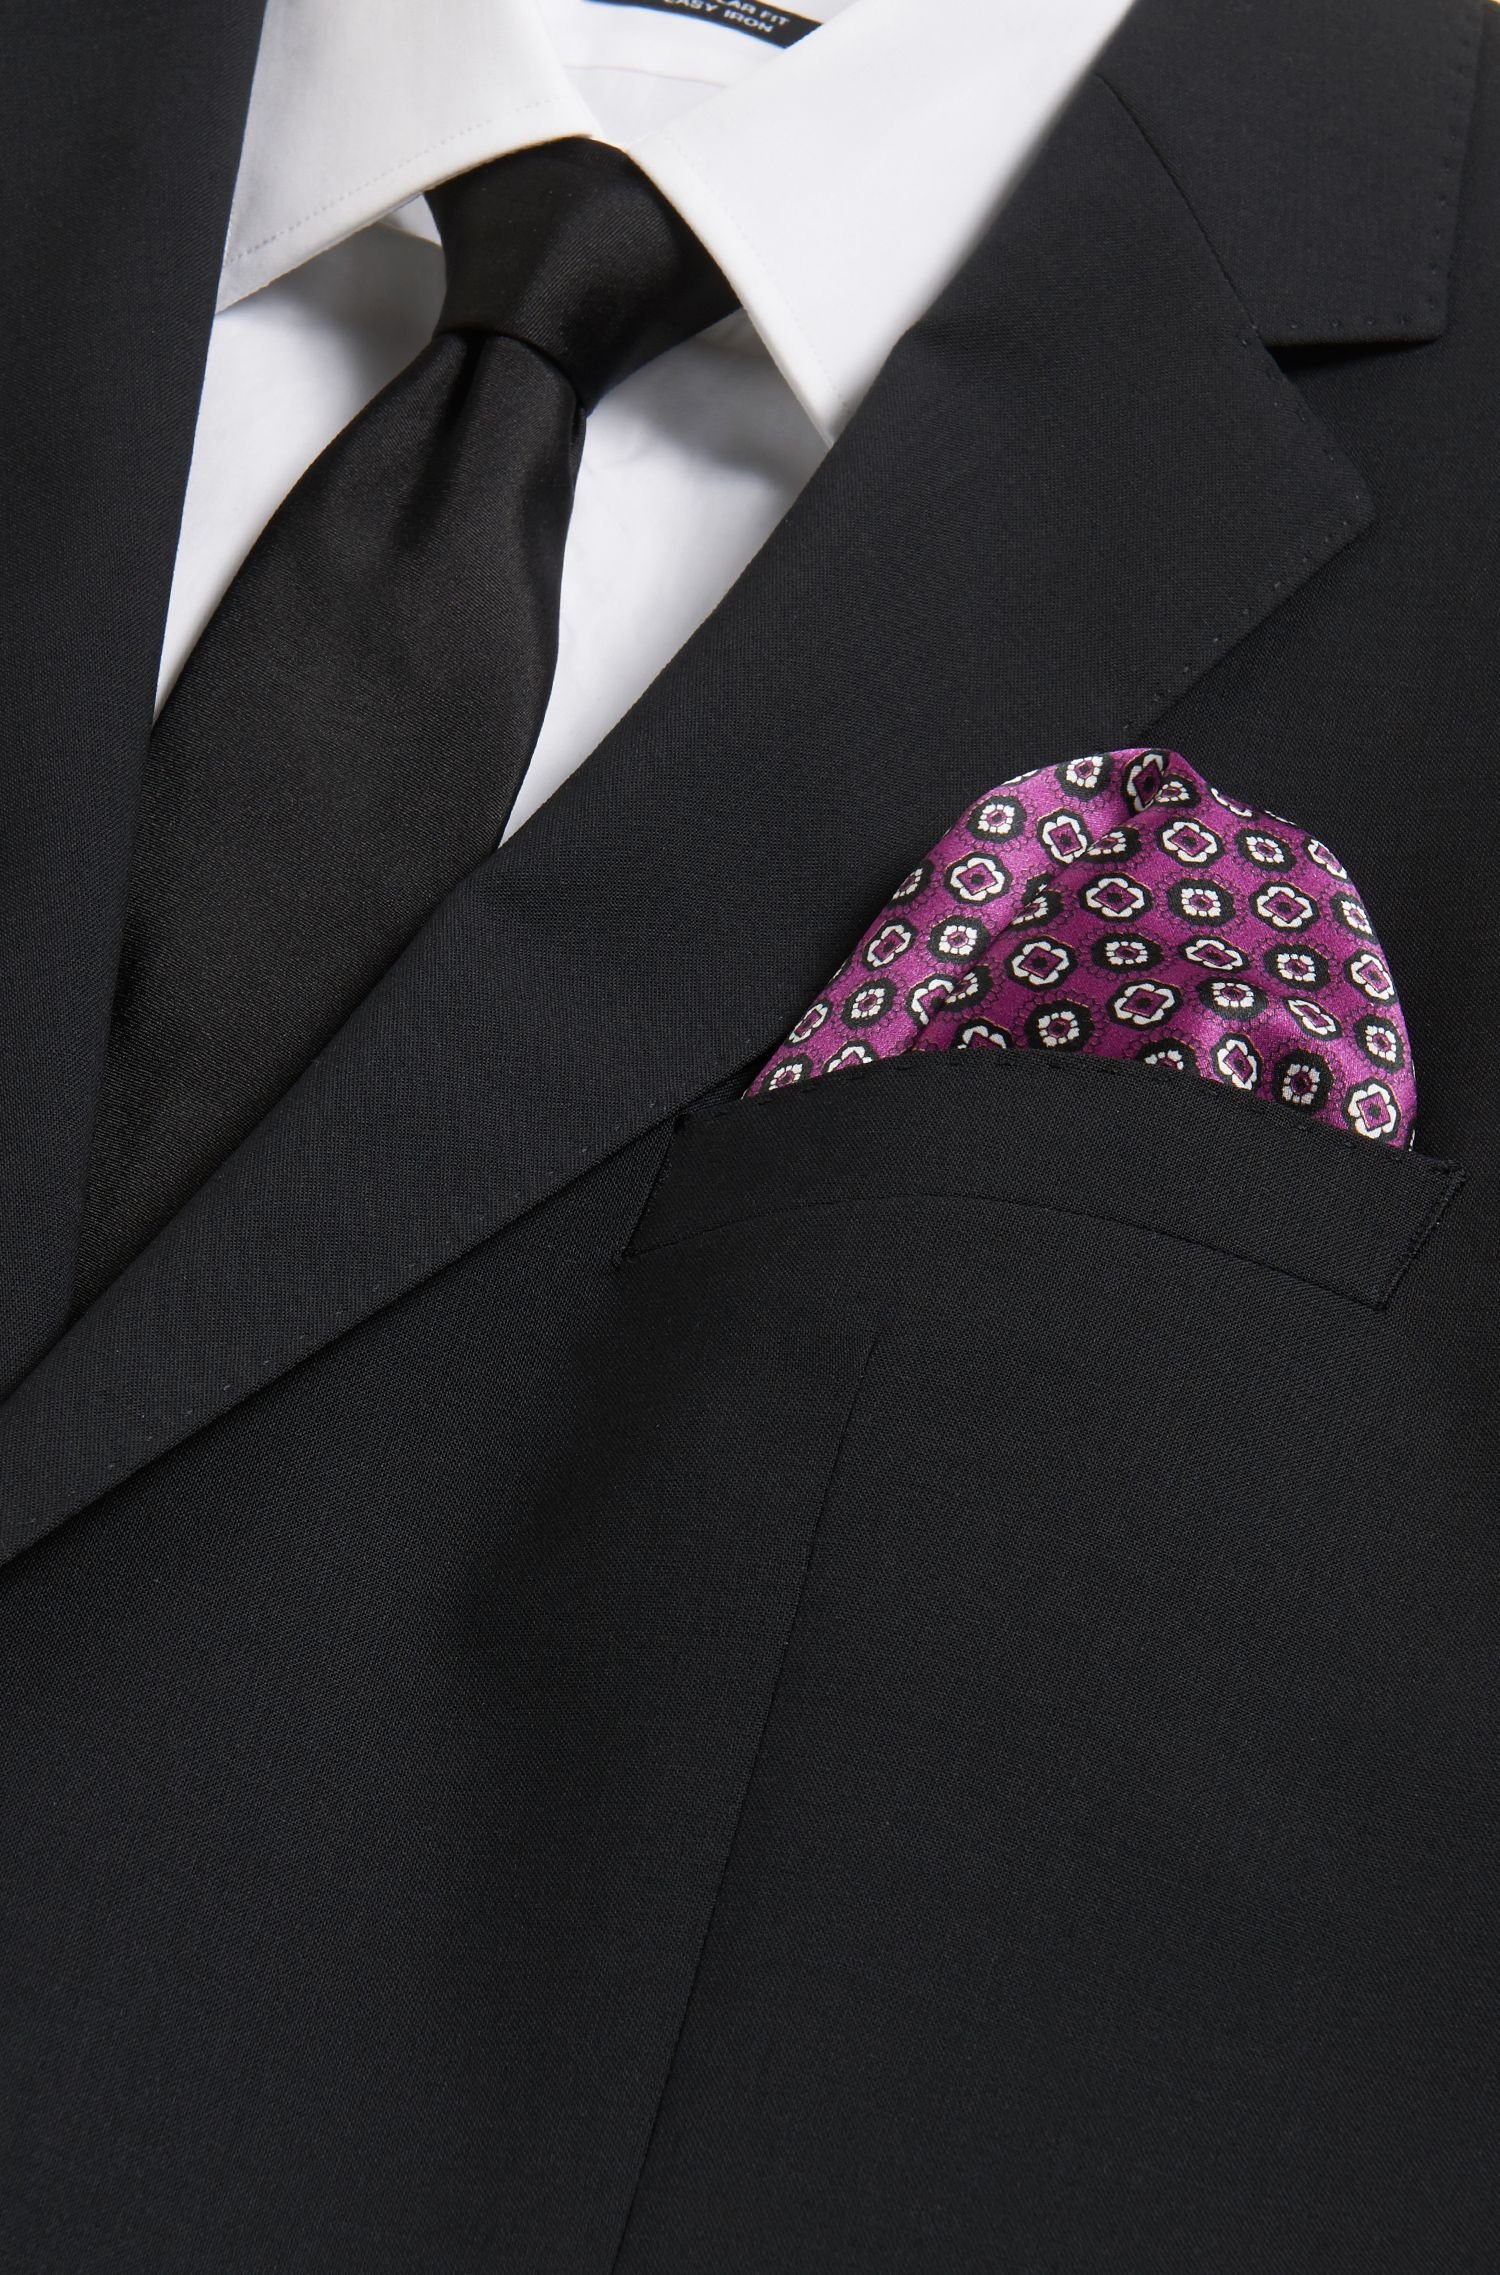 Tile-Patterned Italian Silk Pocket Square, Dark pink